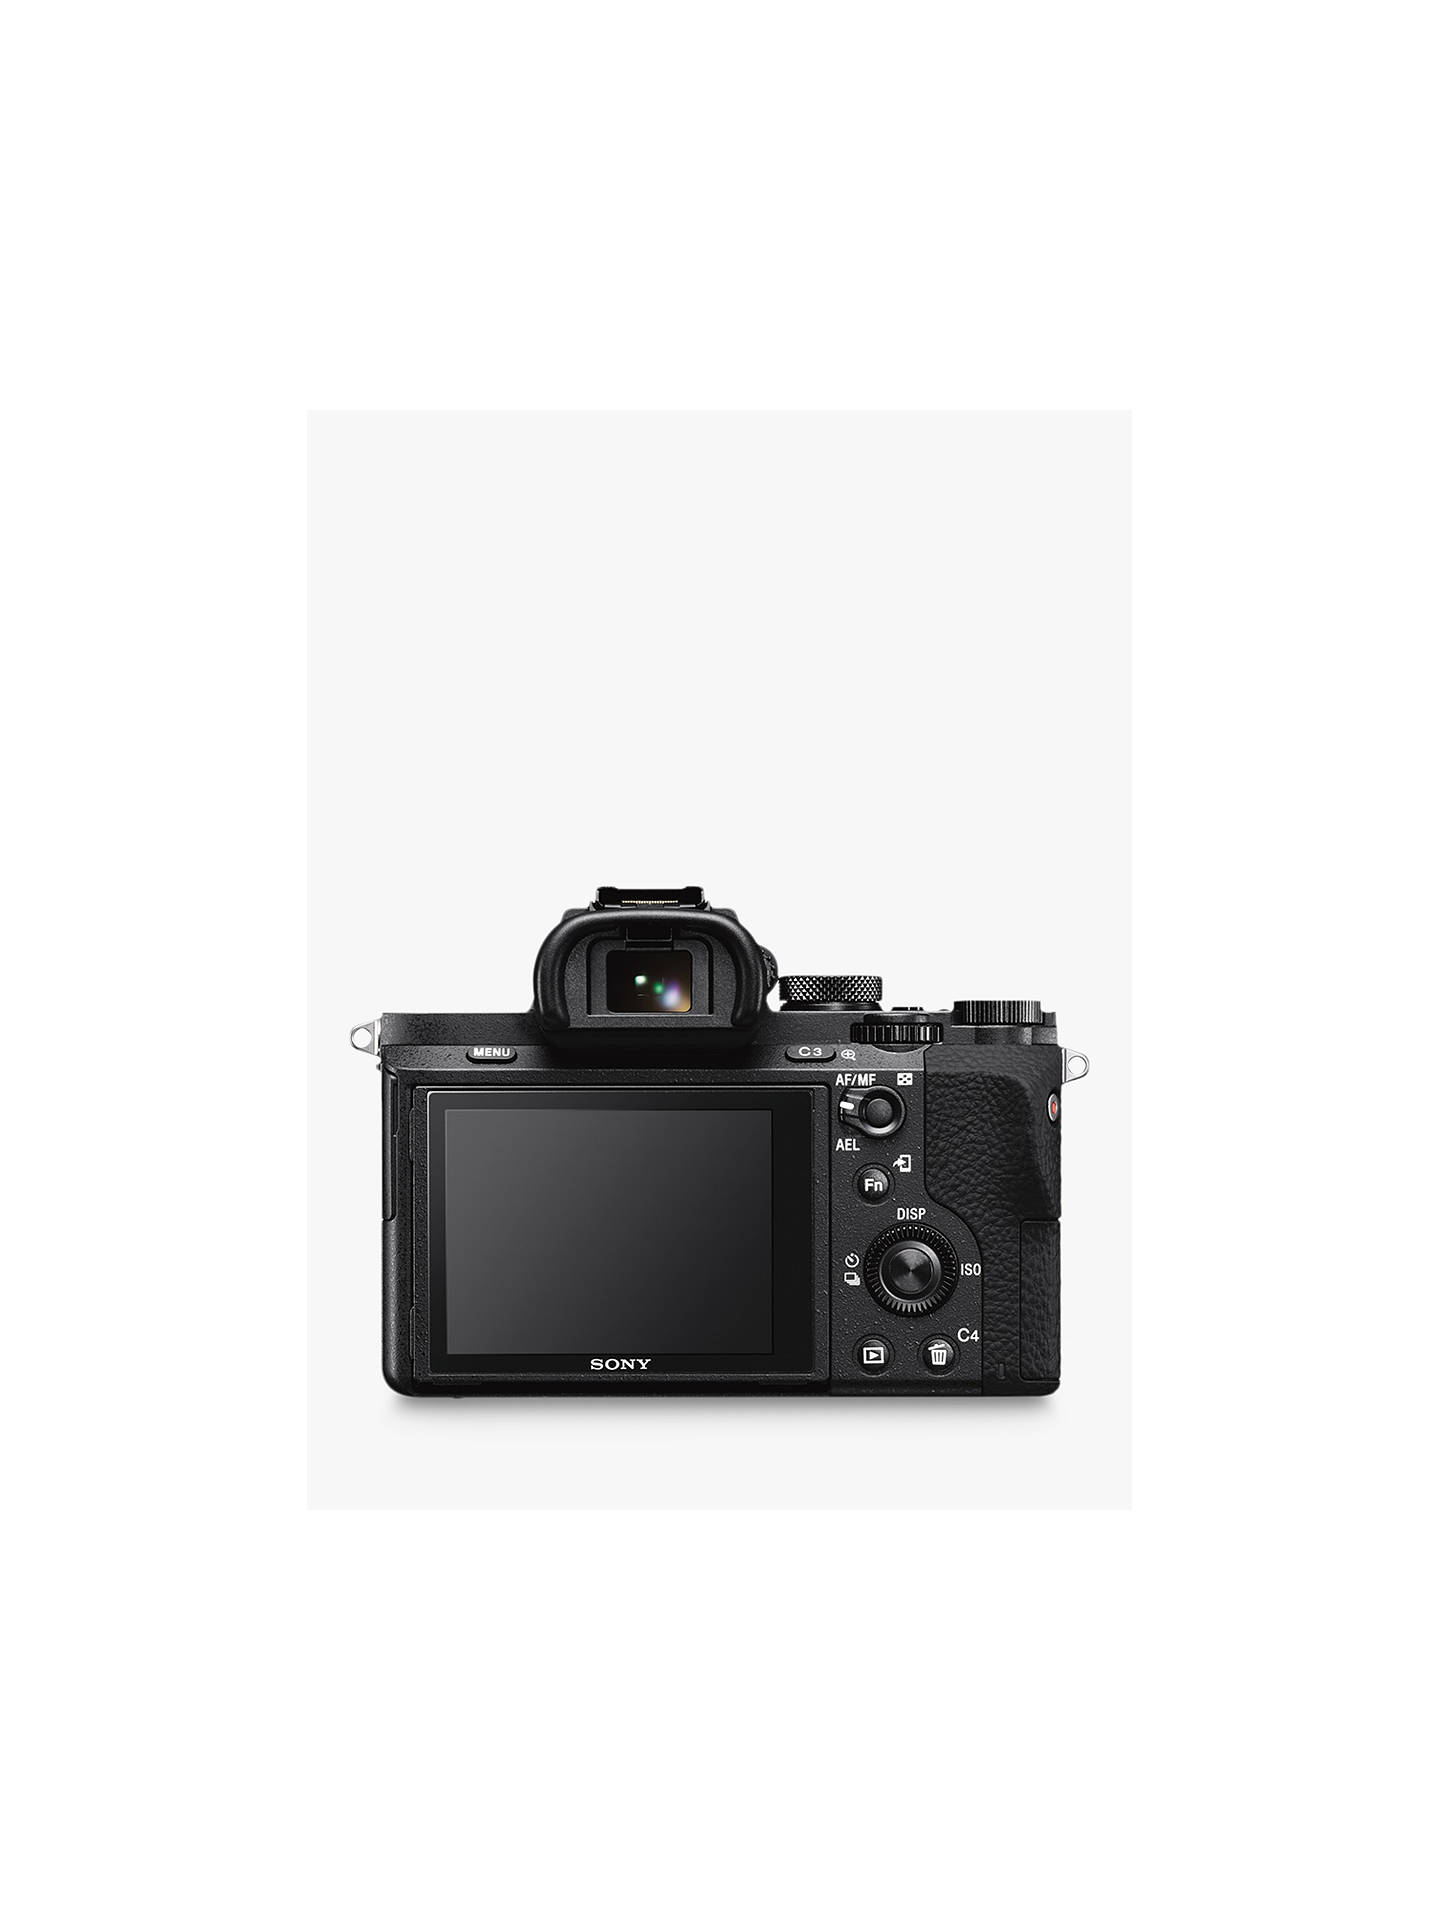 "Buy Sony a7 II (Alpha ILCE-7M2) Compact System Camera With HD 1080p, 24.3MP, Wi-Fi, NFC, OLED EVF, 5-Axis Image Stabiliser & 3"" LCD Screen, Body Only Online at johnlewis.com"